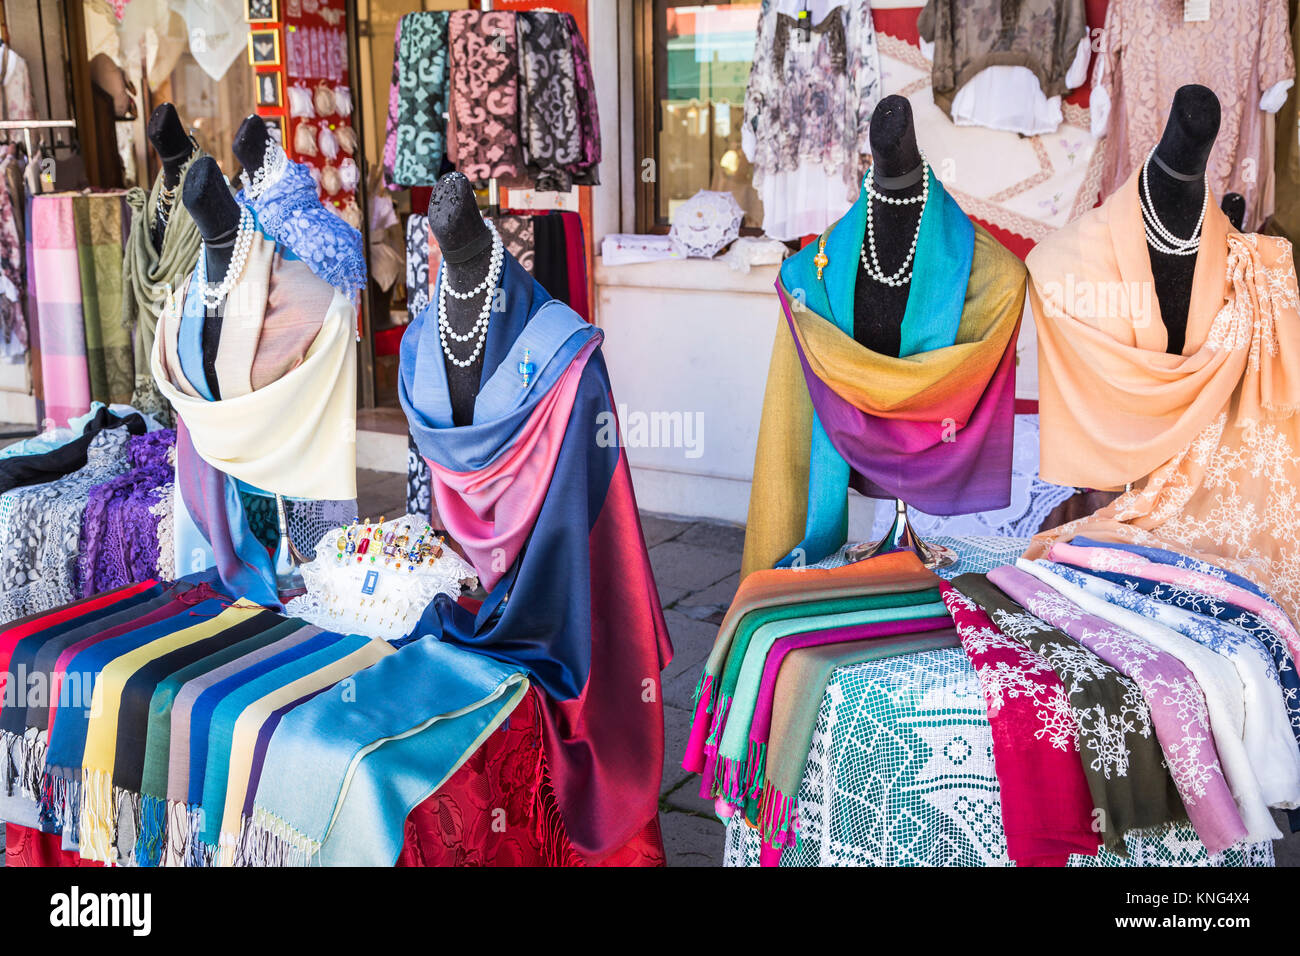 A lace shop display in the Venetian village of Burano, Venice, Italy, Europe. - Stock Image